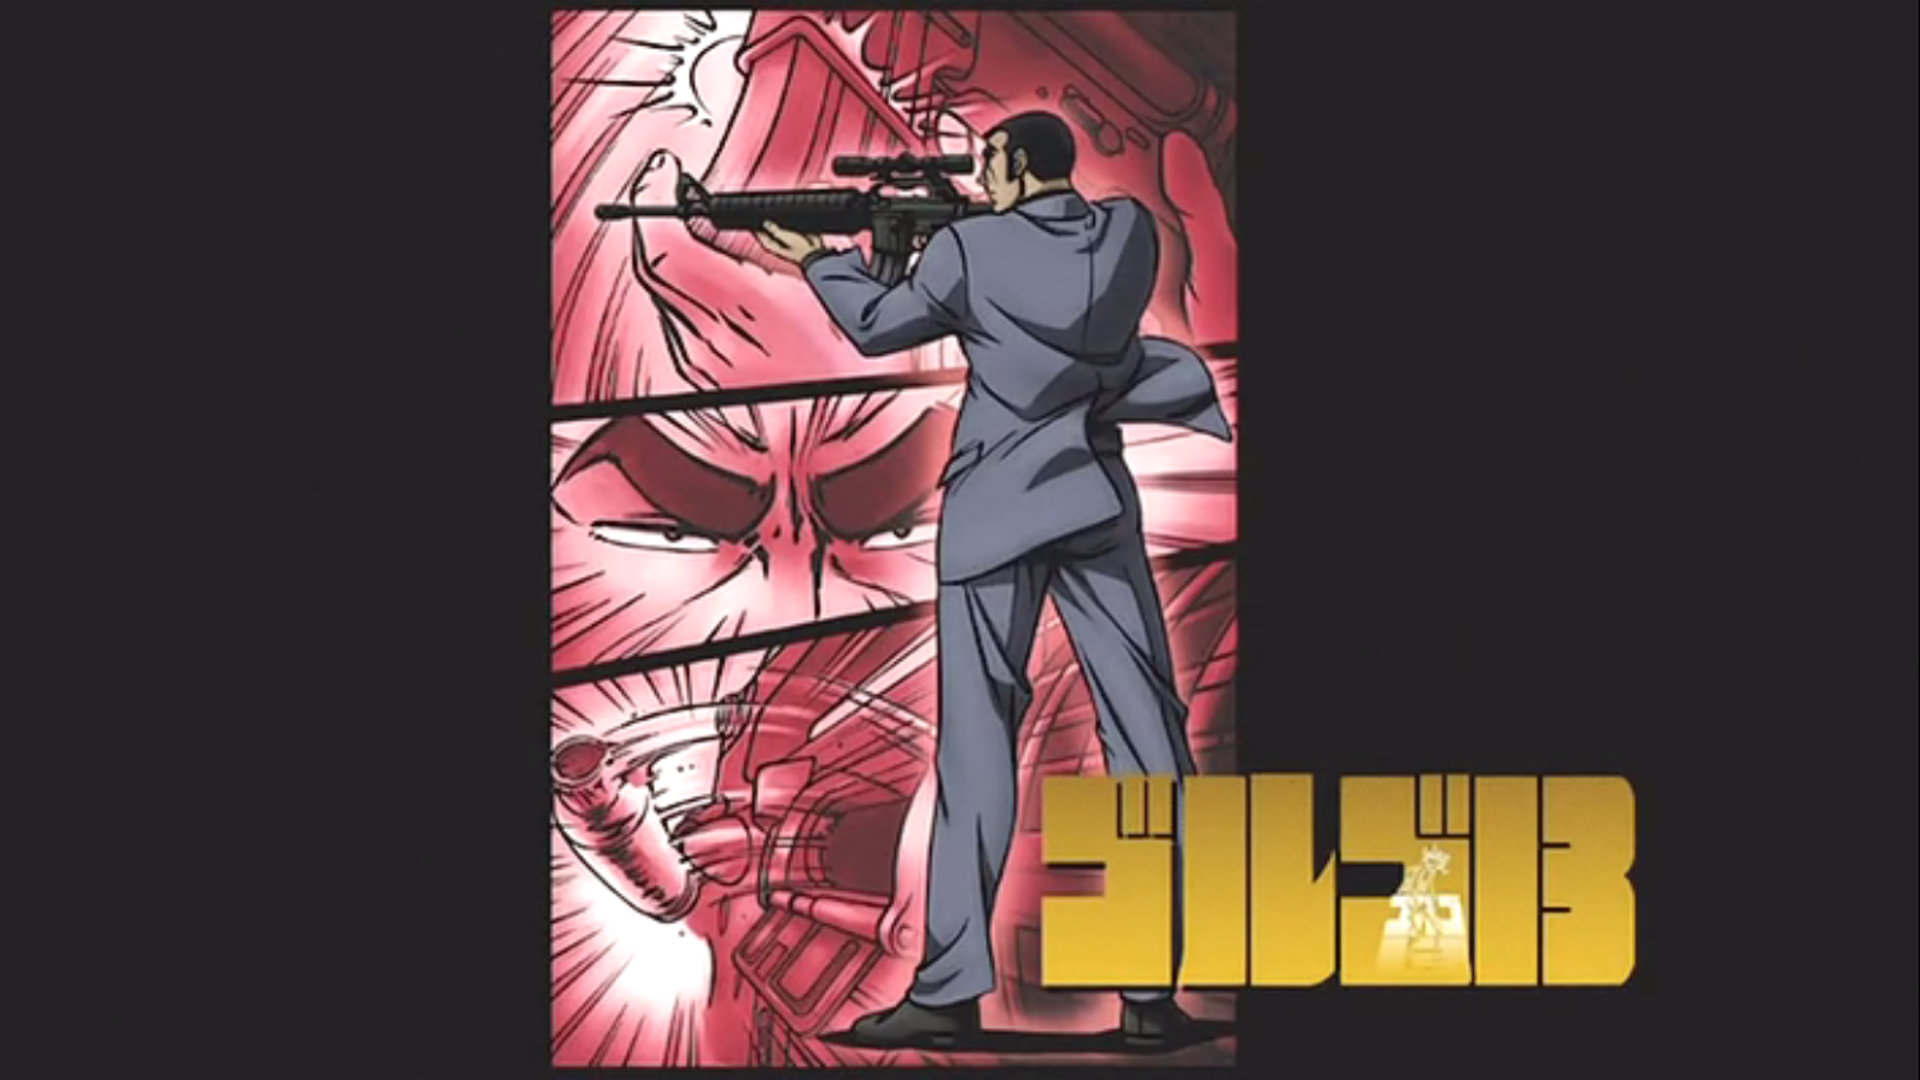 Download 1080p Golgo 13 PC background ID:144537 for free